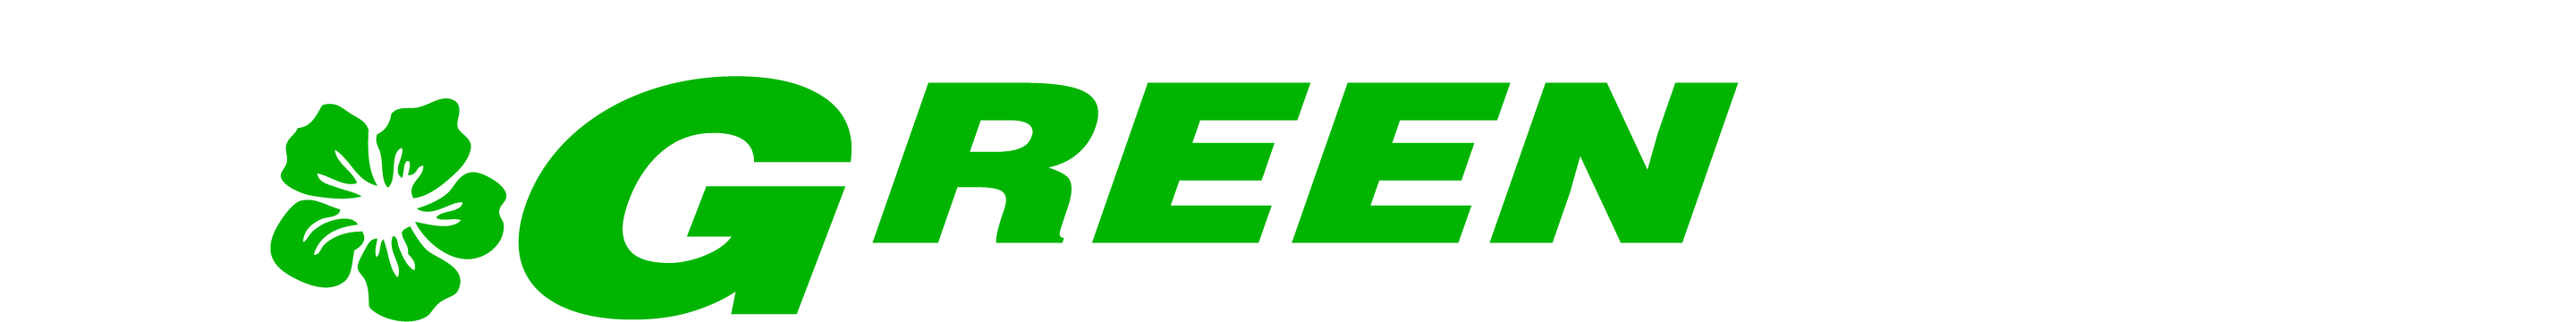 GreenTeam_Logo_BlackBG